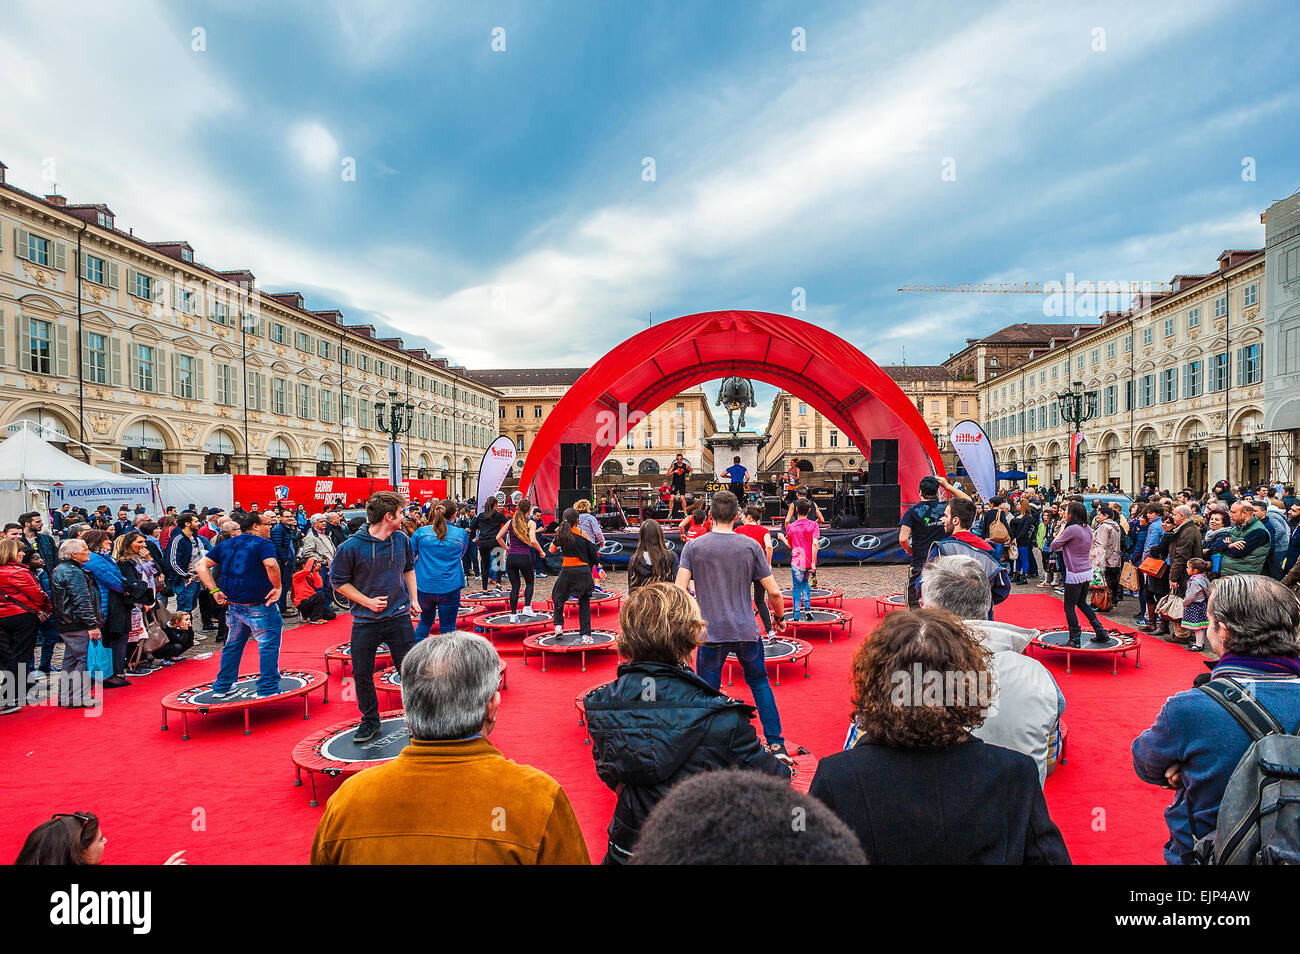 Italy Piedmont Turin San Carlo square .Gymnastics in the square - Stock Image